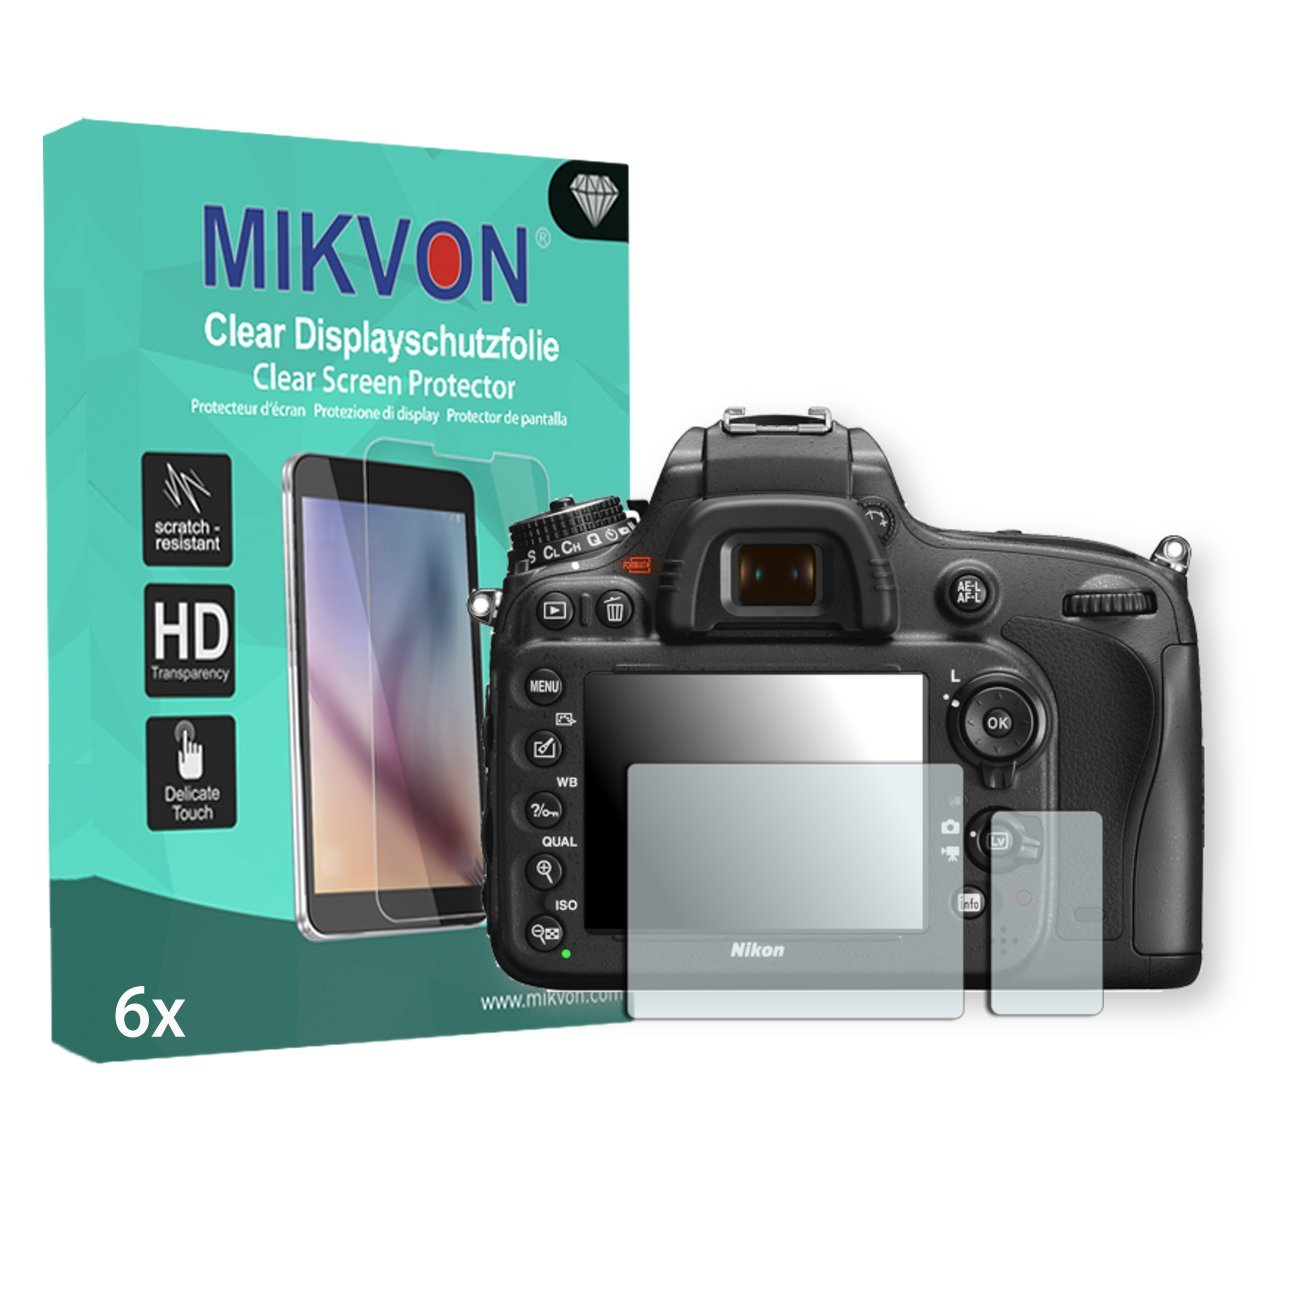 6x Mikvon Clear Screen Protector for Nikon D600 - Retail Package with accessories